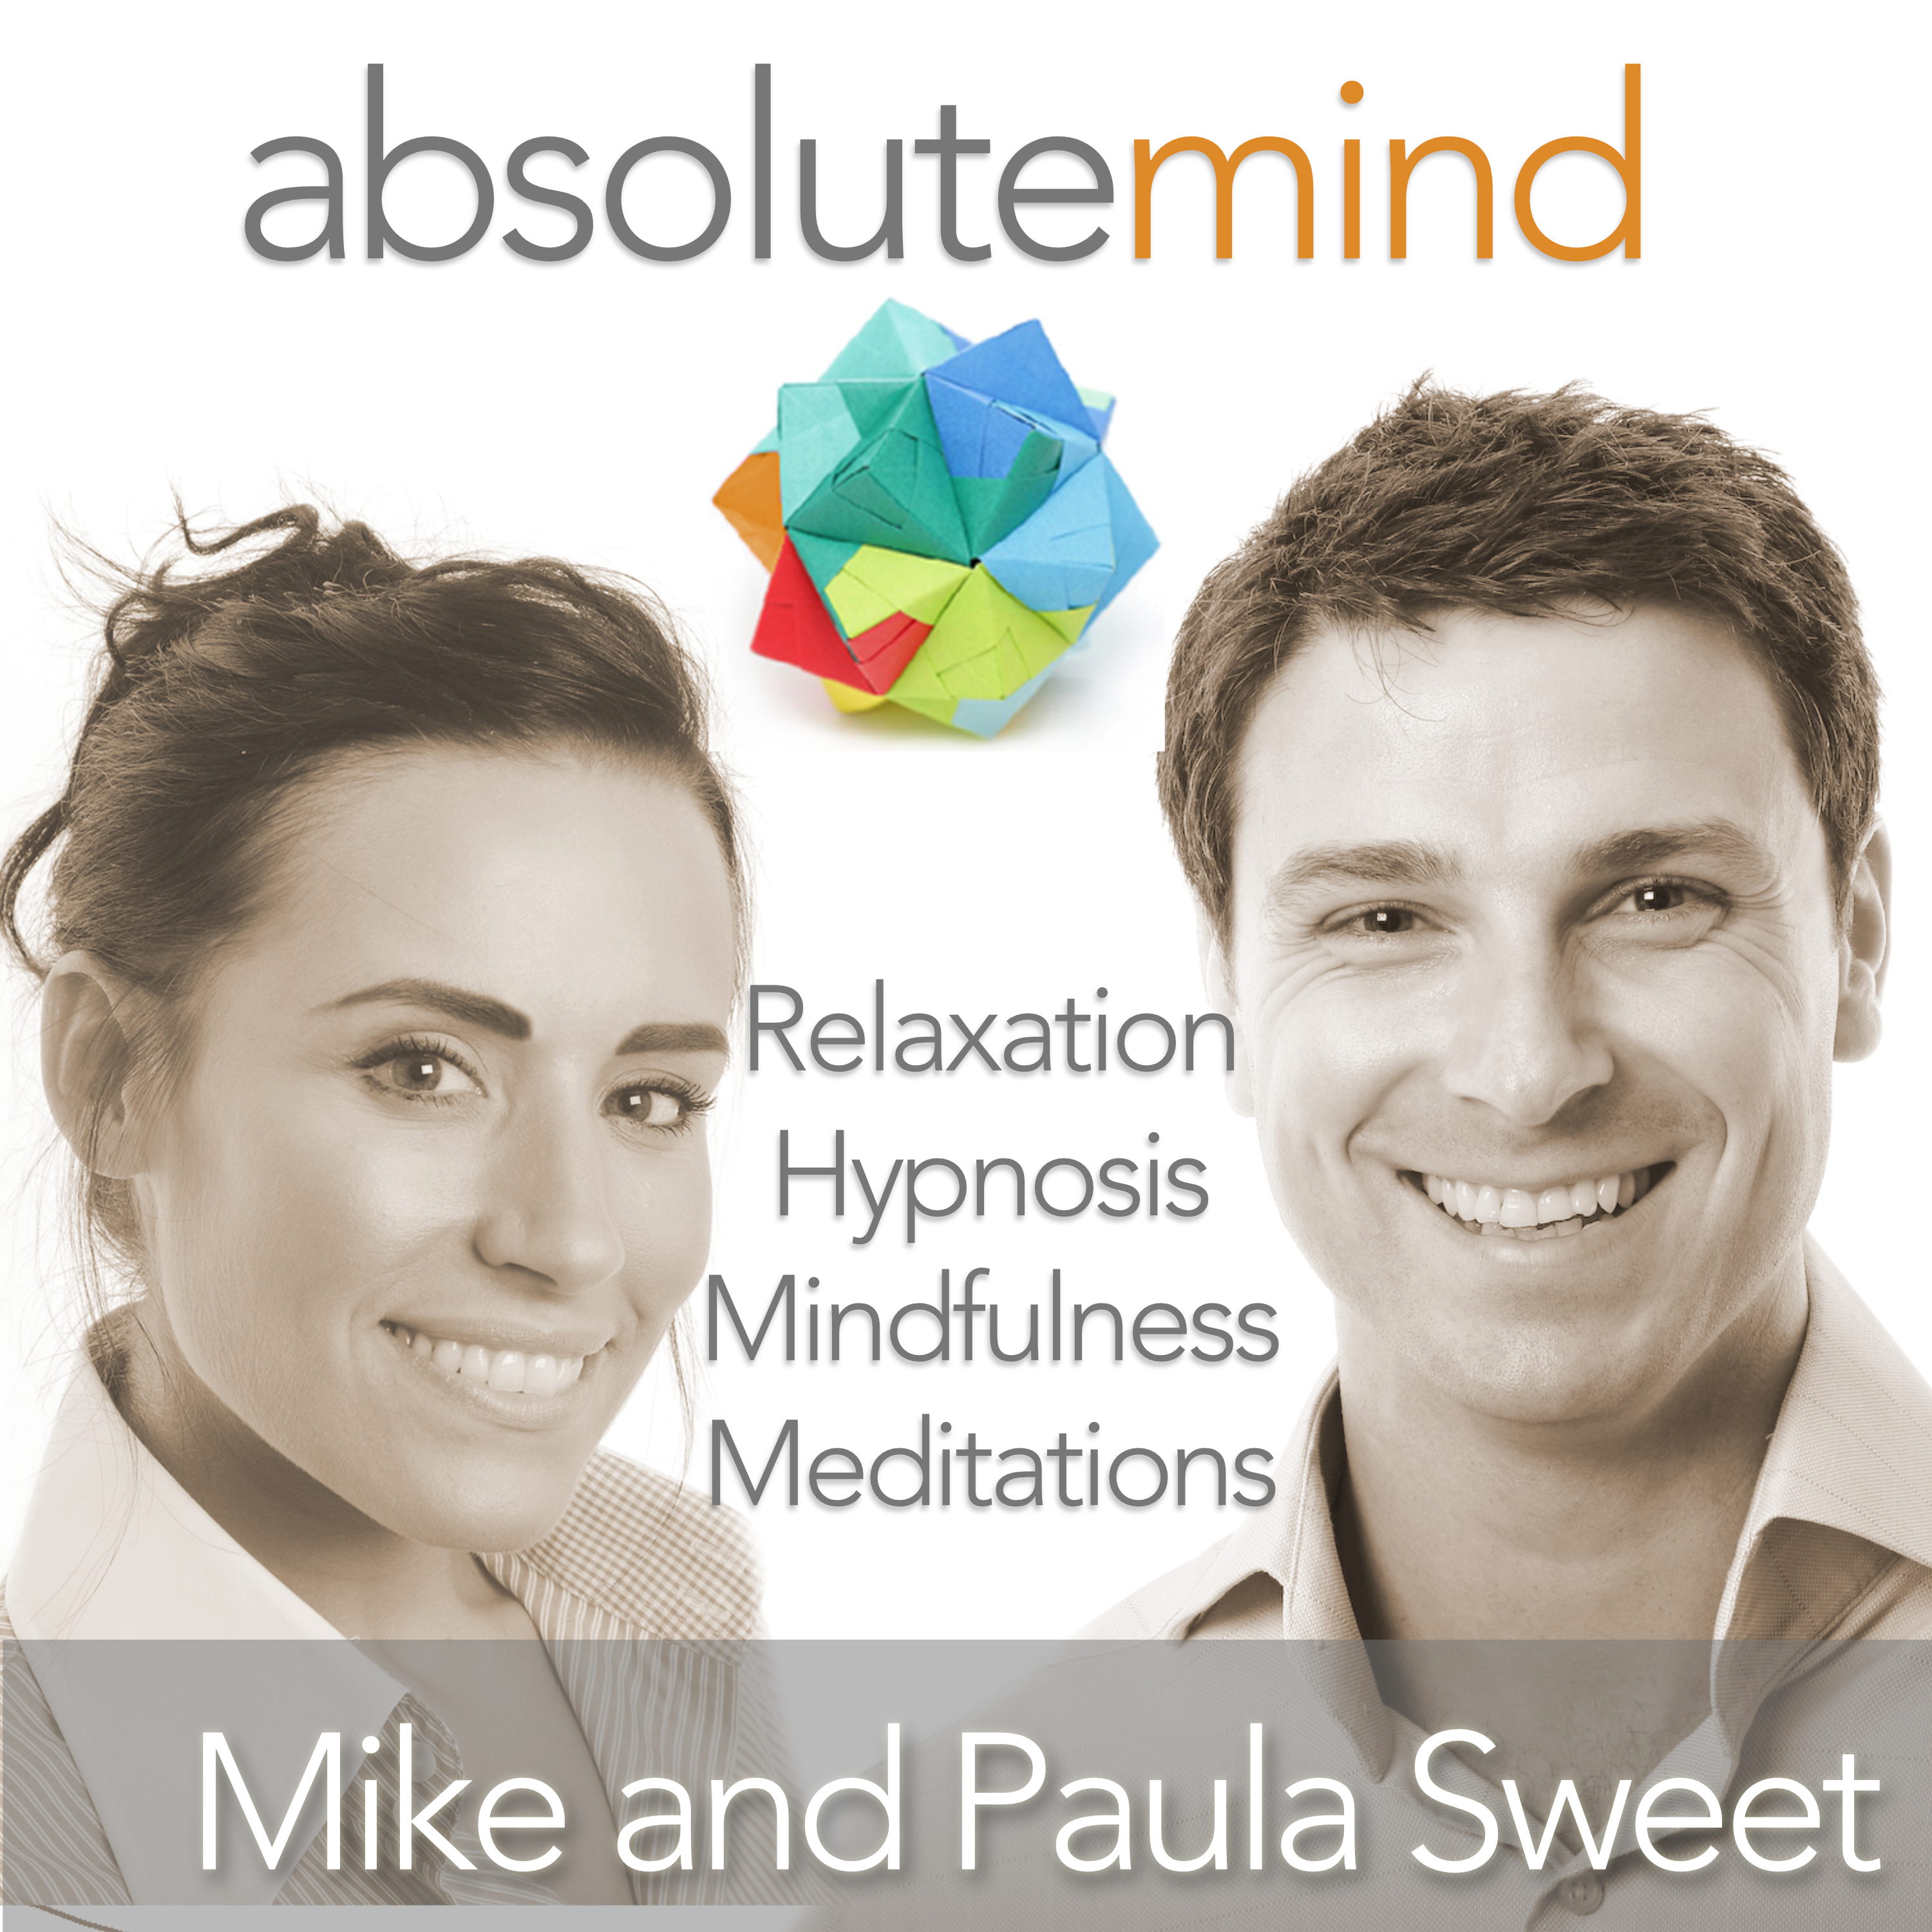 Hypnosis | Hypnotherapy | Life Coaching | Meditations and Self Help by Mike and Paula Sweet